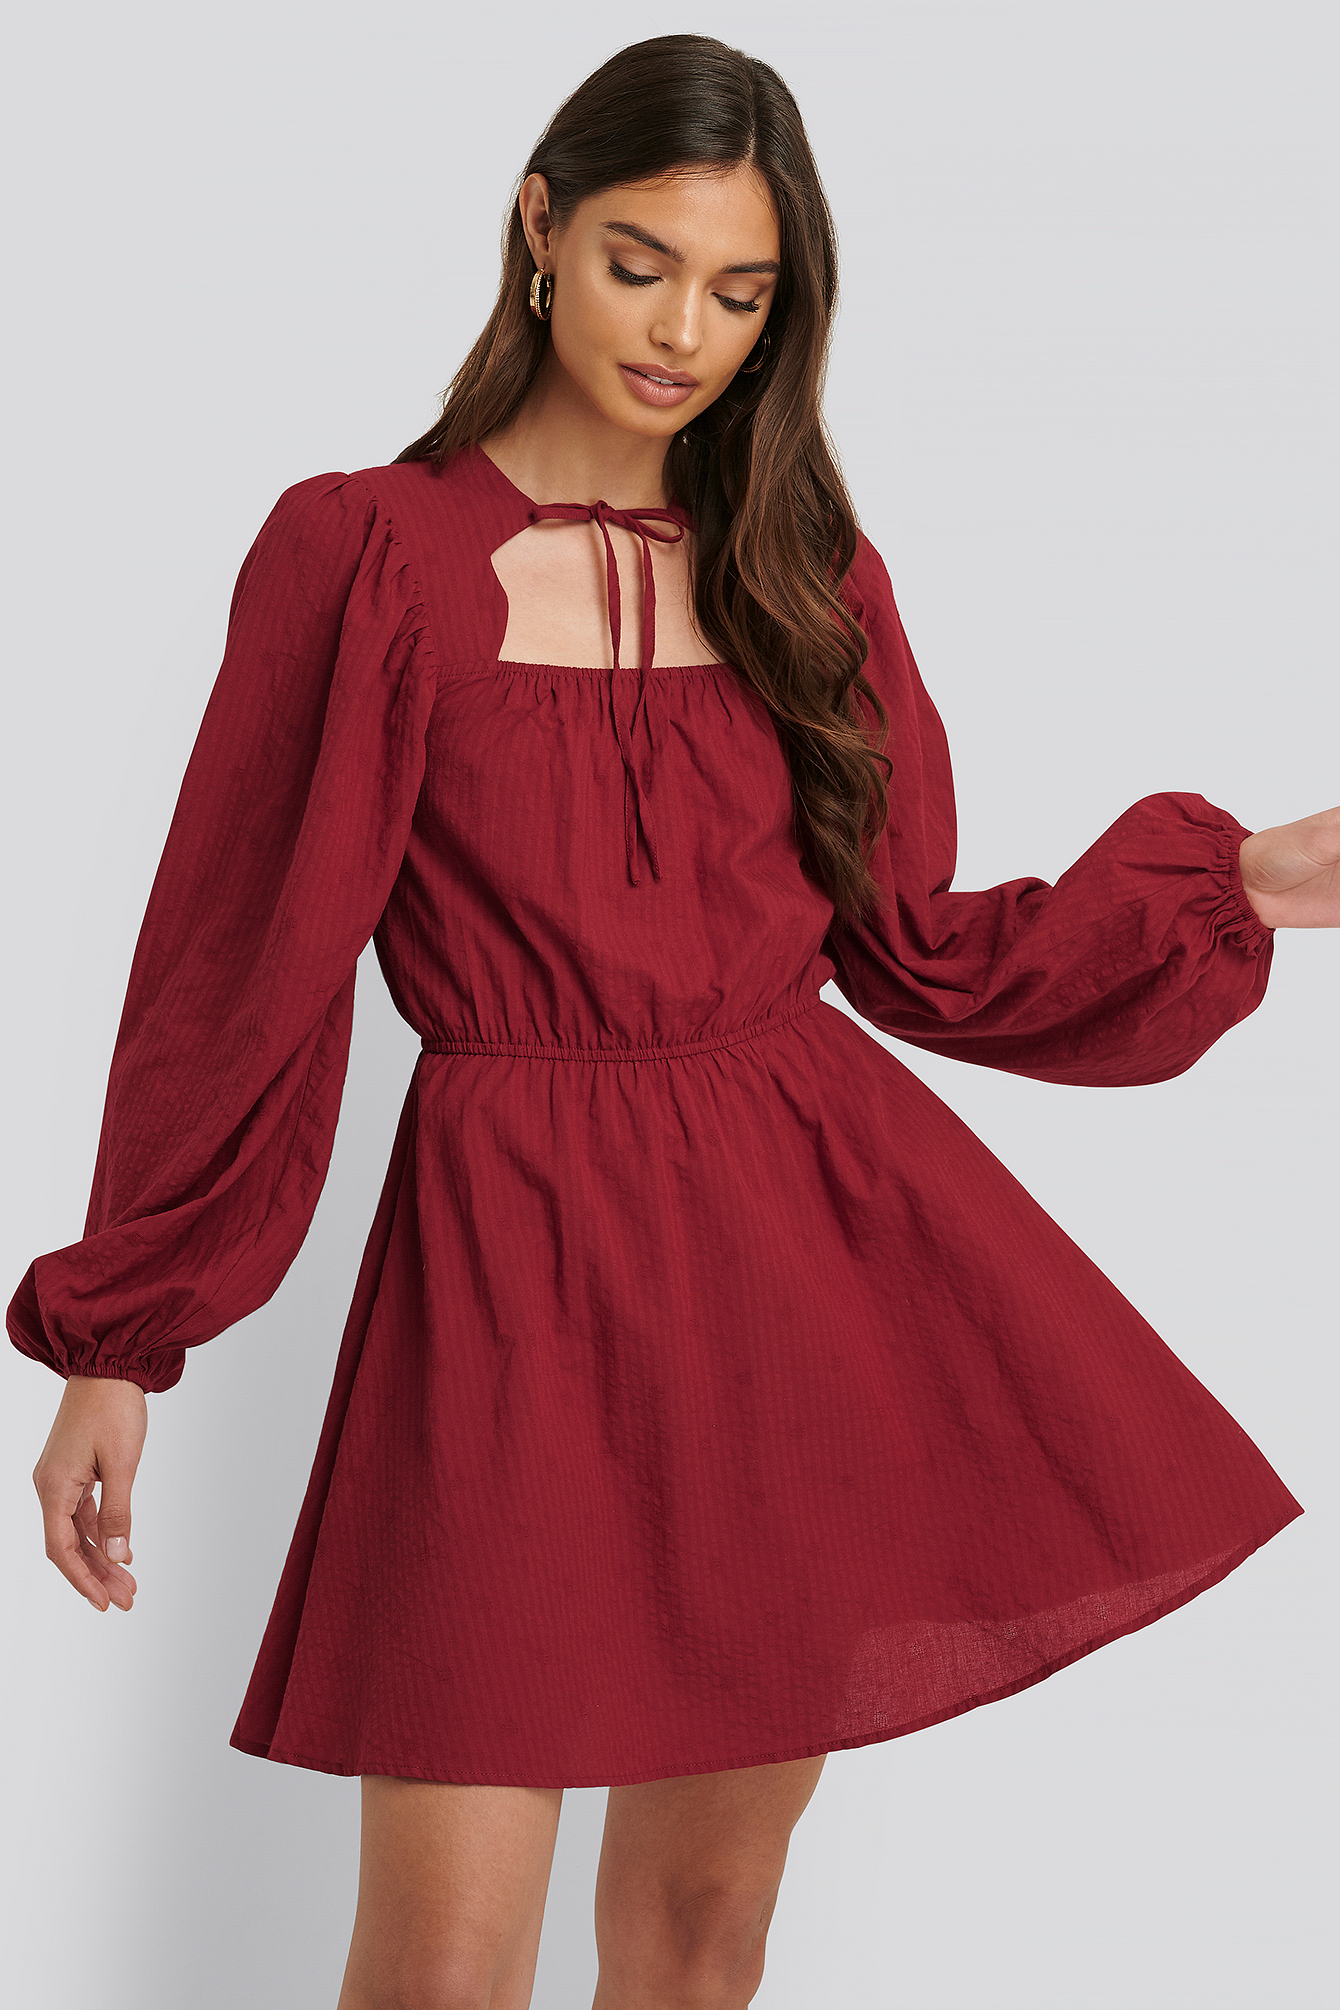 na-kd boho -  Scalloped Neckline Mini Dress - Red